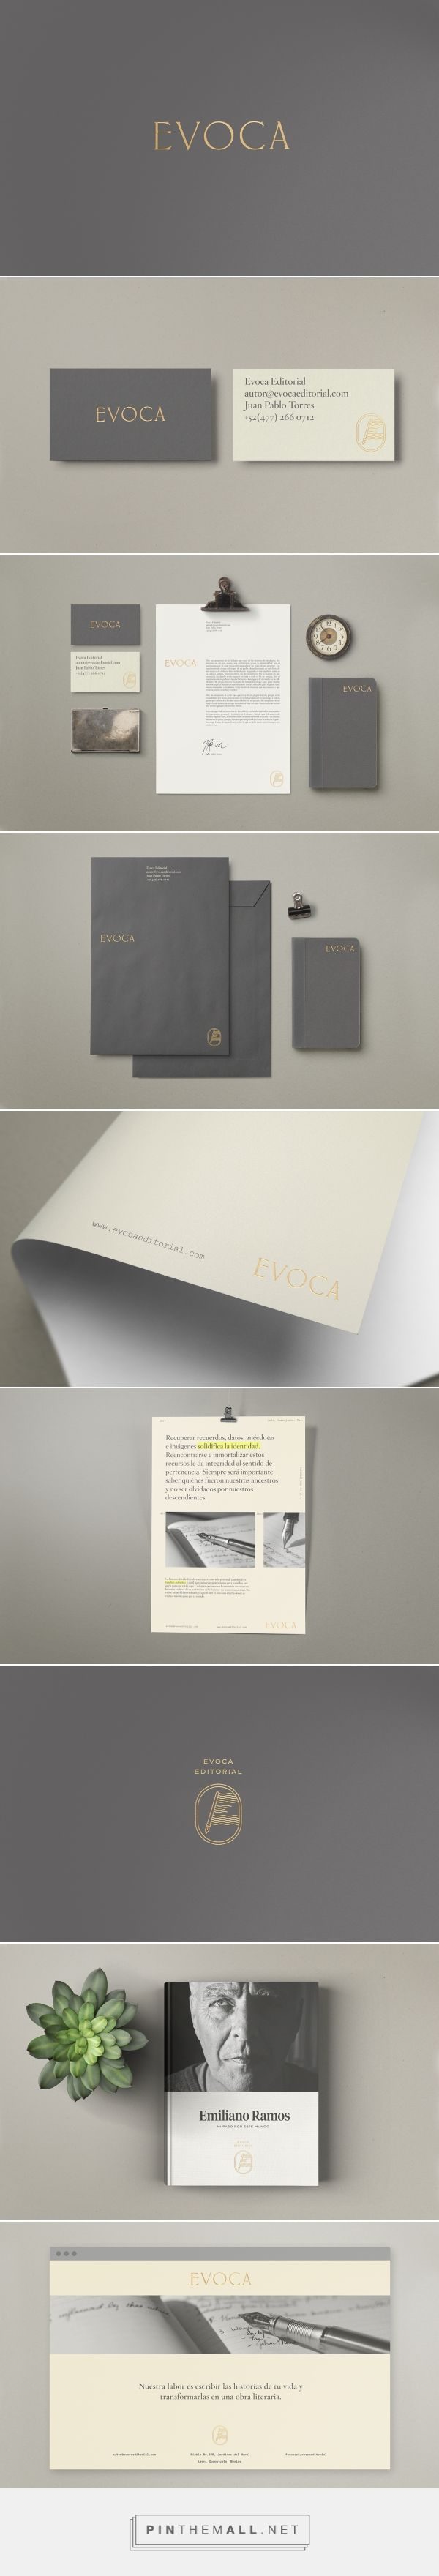 Evoca Editorial Branding by Treceveinte | Fivestar Branding Agency – Design and Branding Agency & Curated Inspiration Gallery